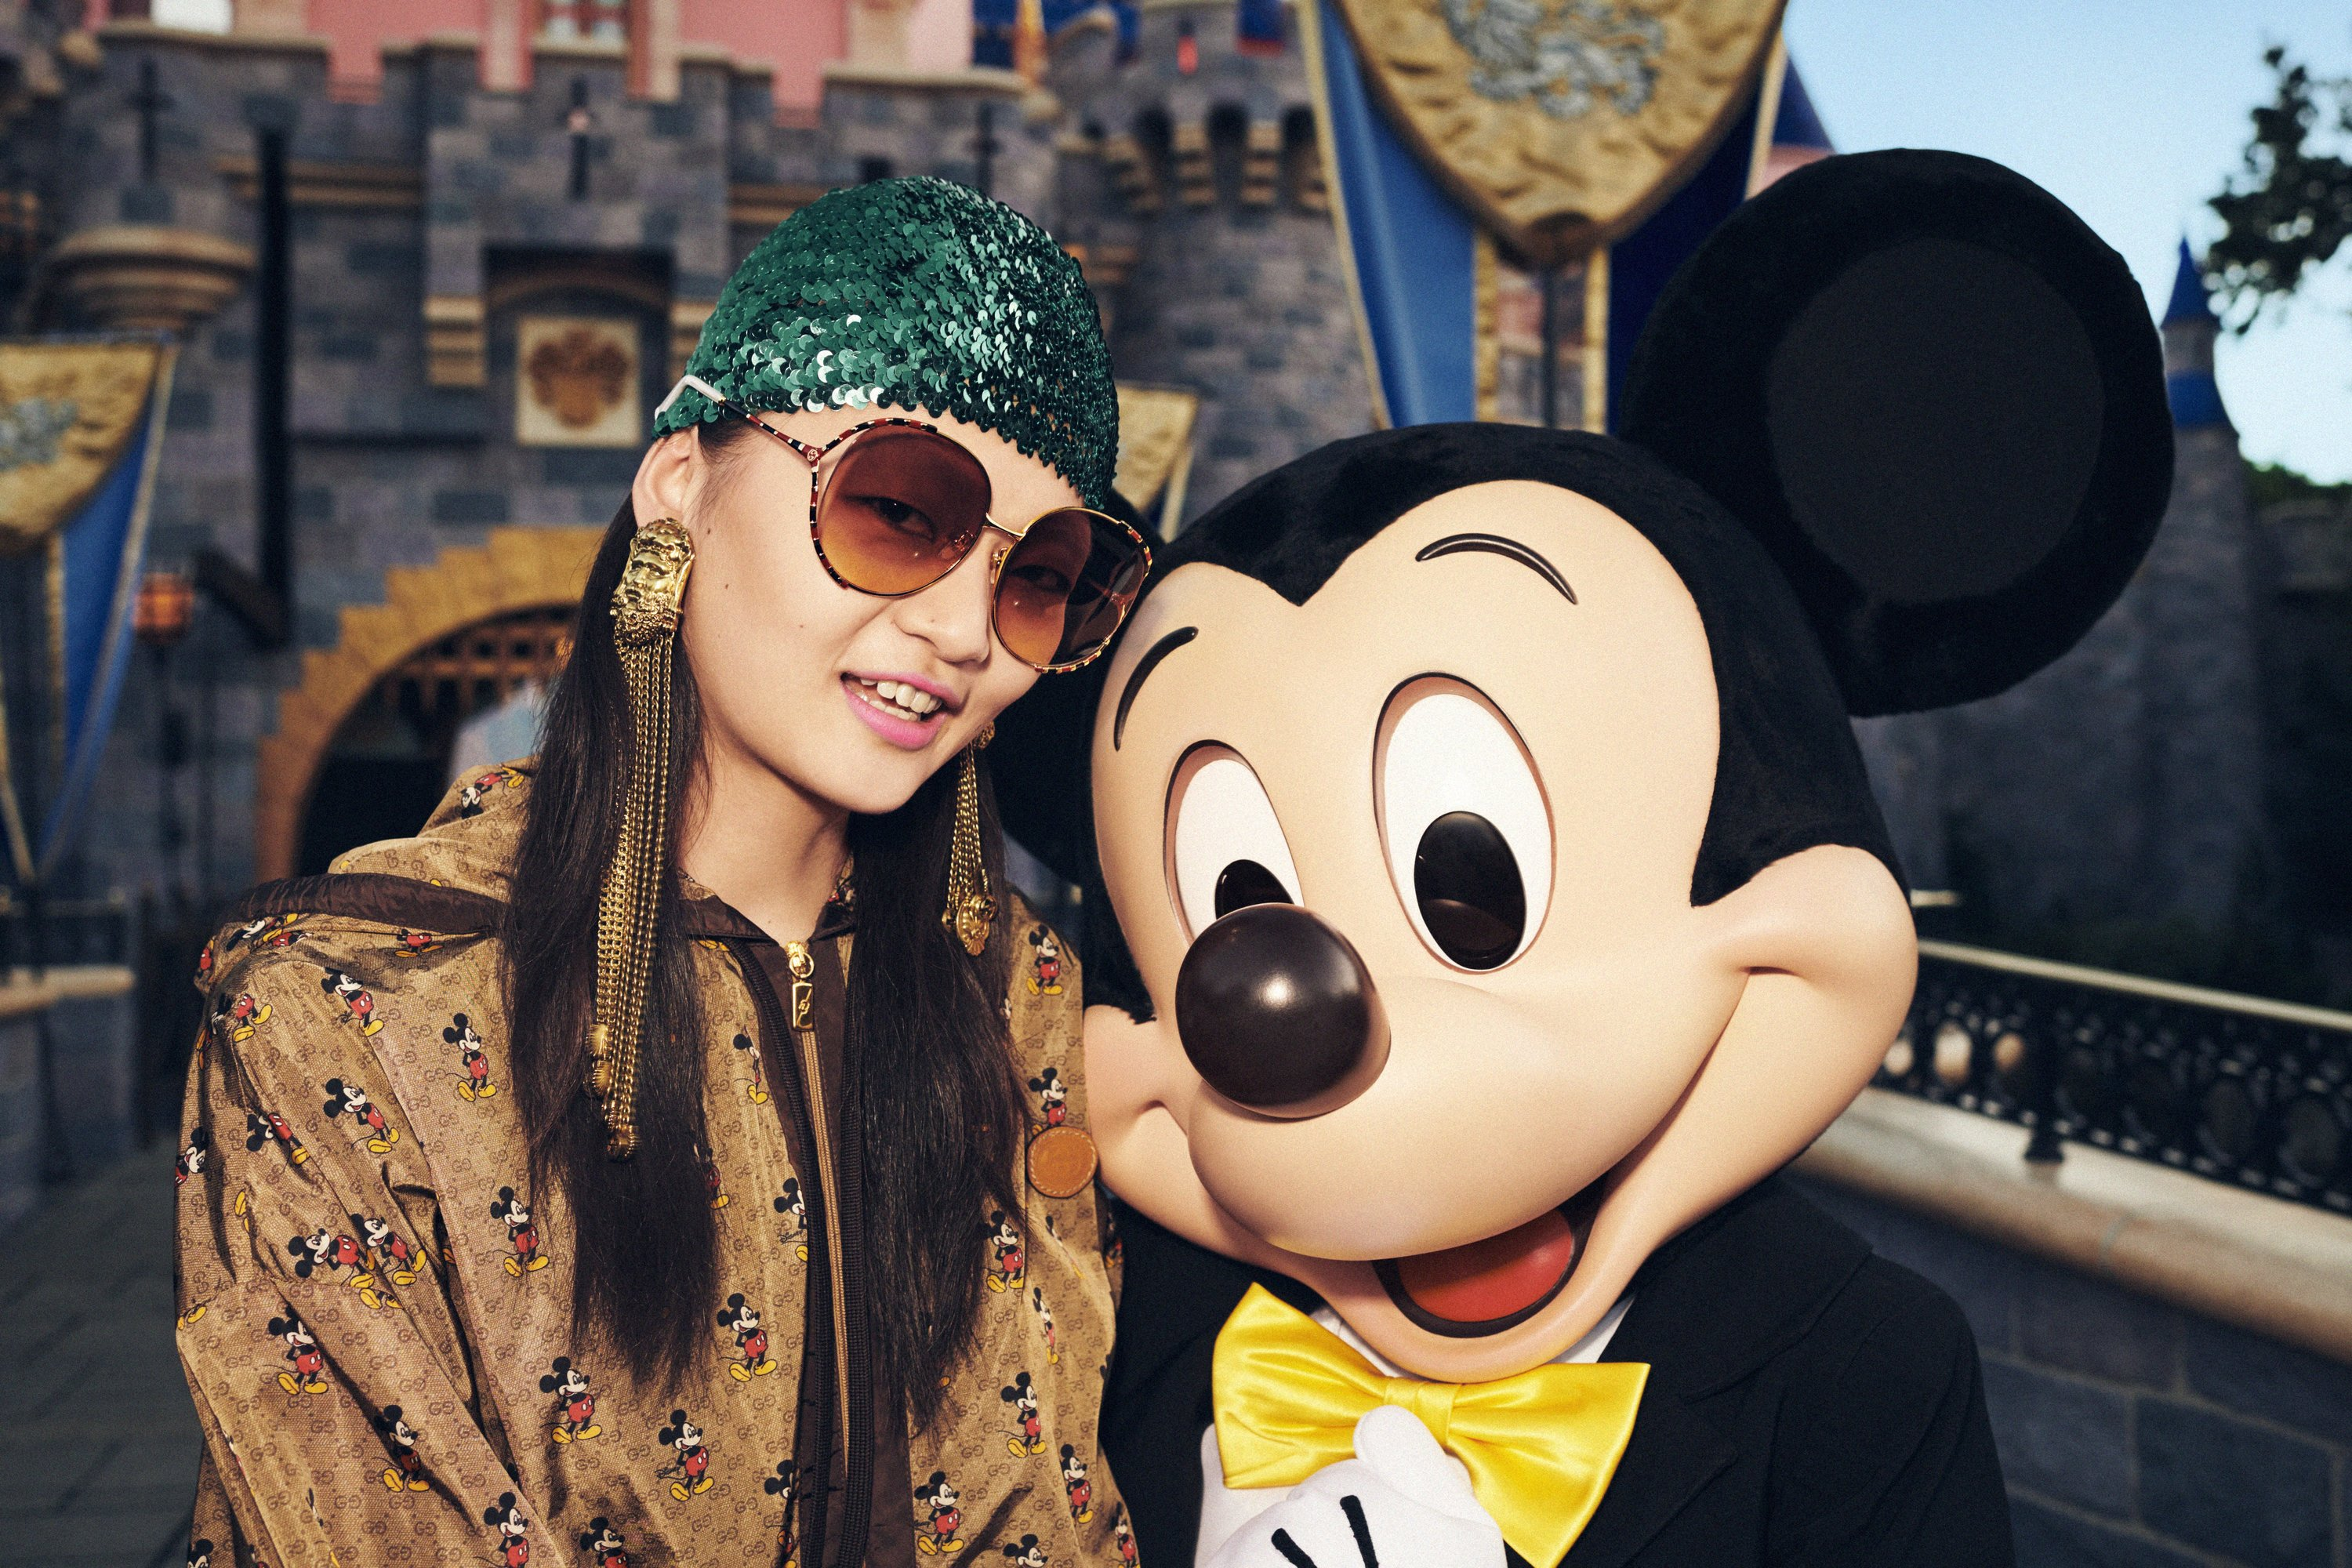 Gucci cny 2020 x disney_ puyi optical_14012020